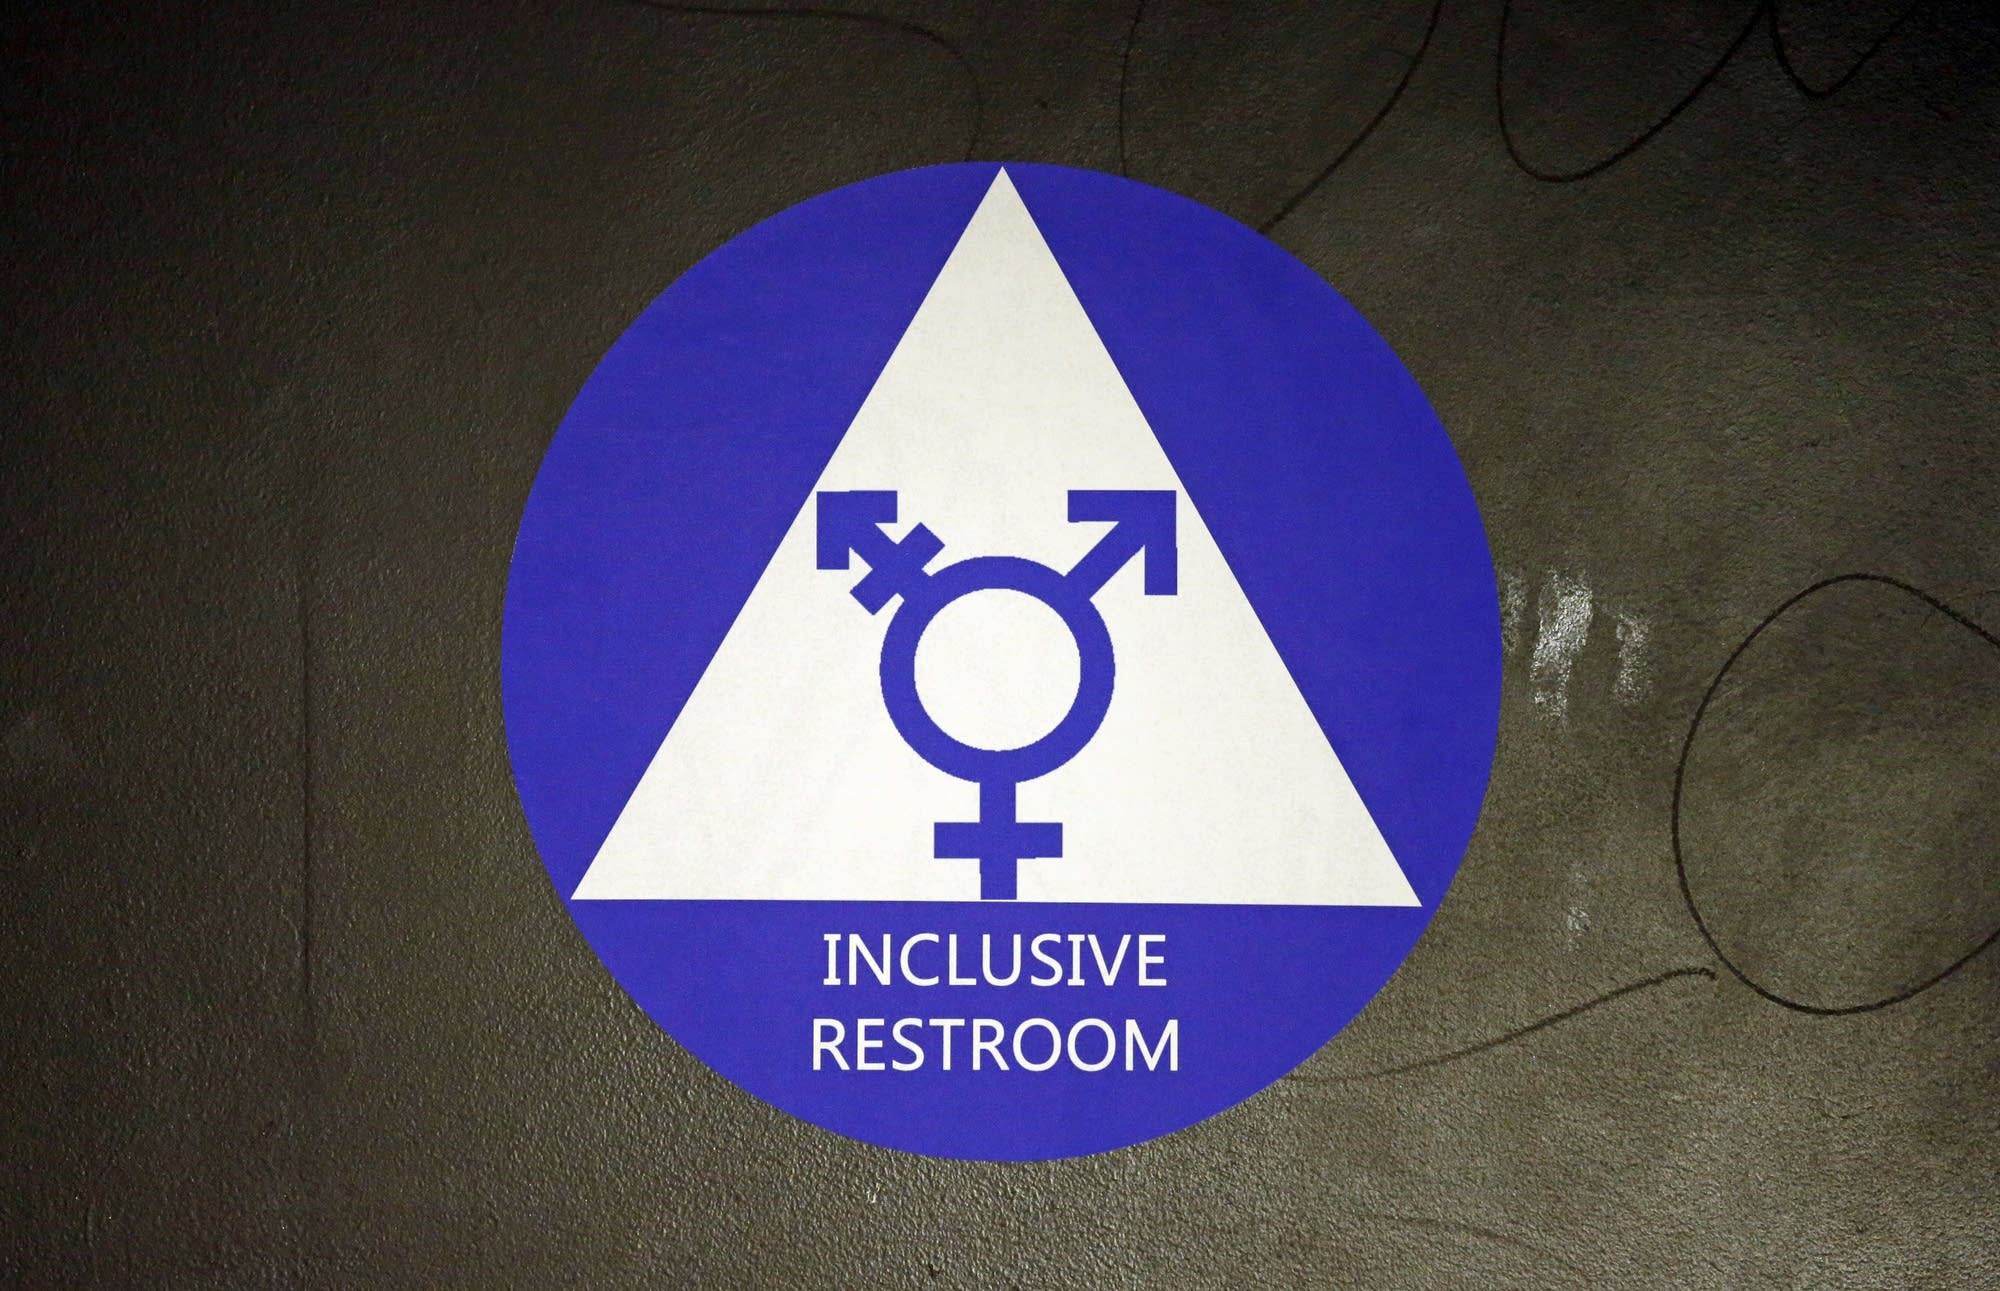 A new sticker designates a gender neutral bathroom